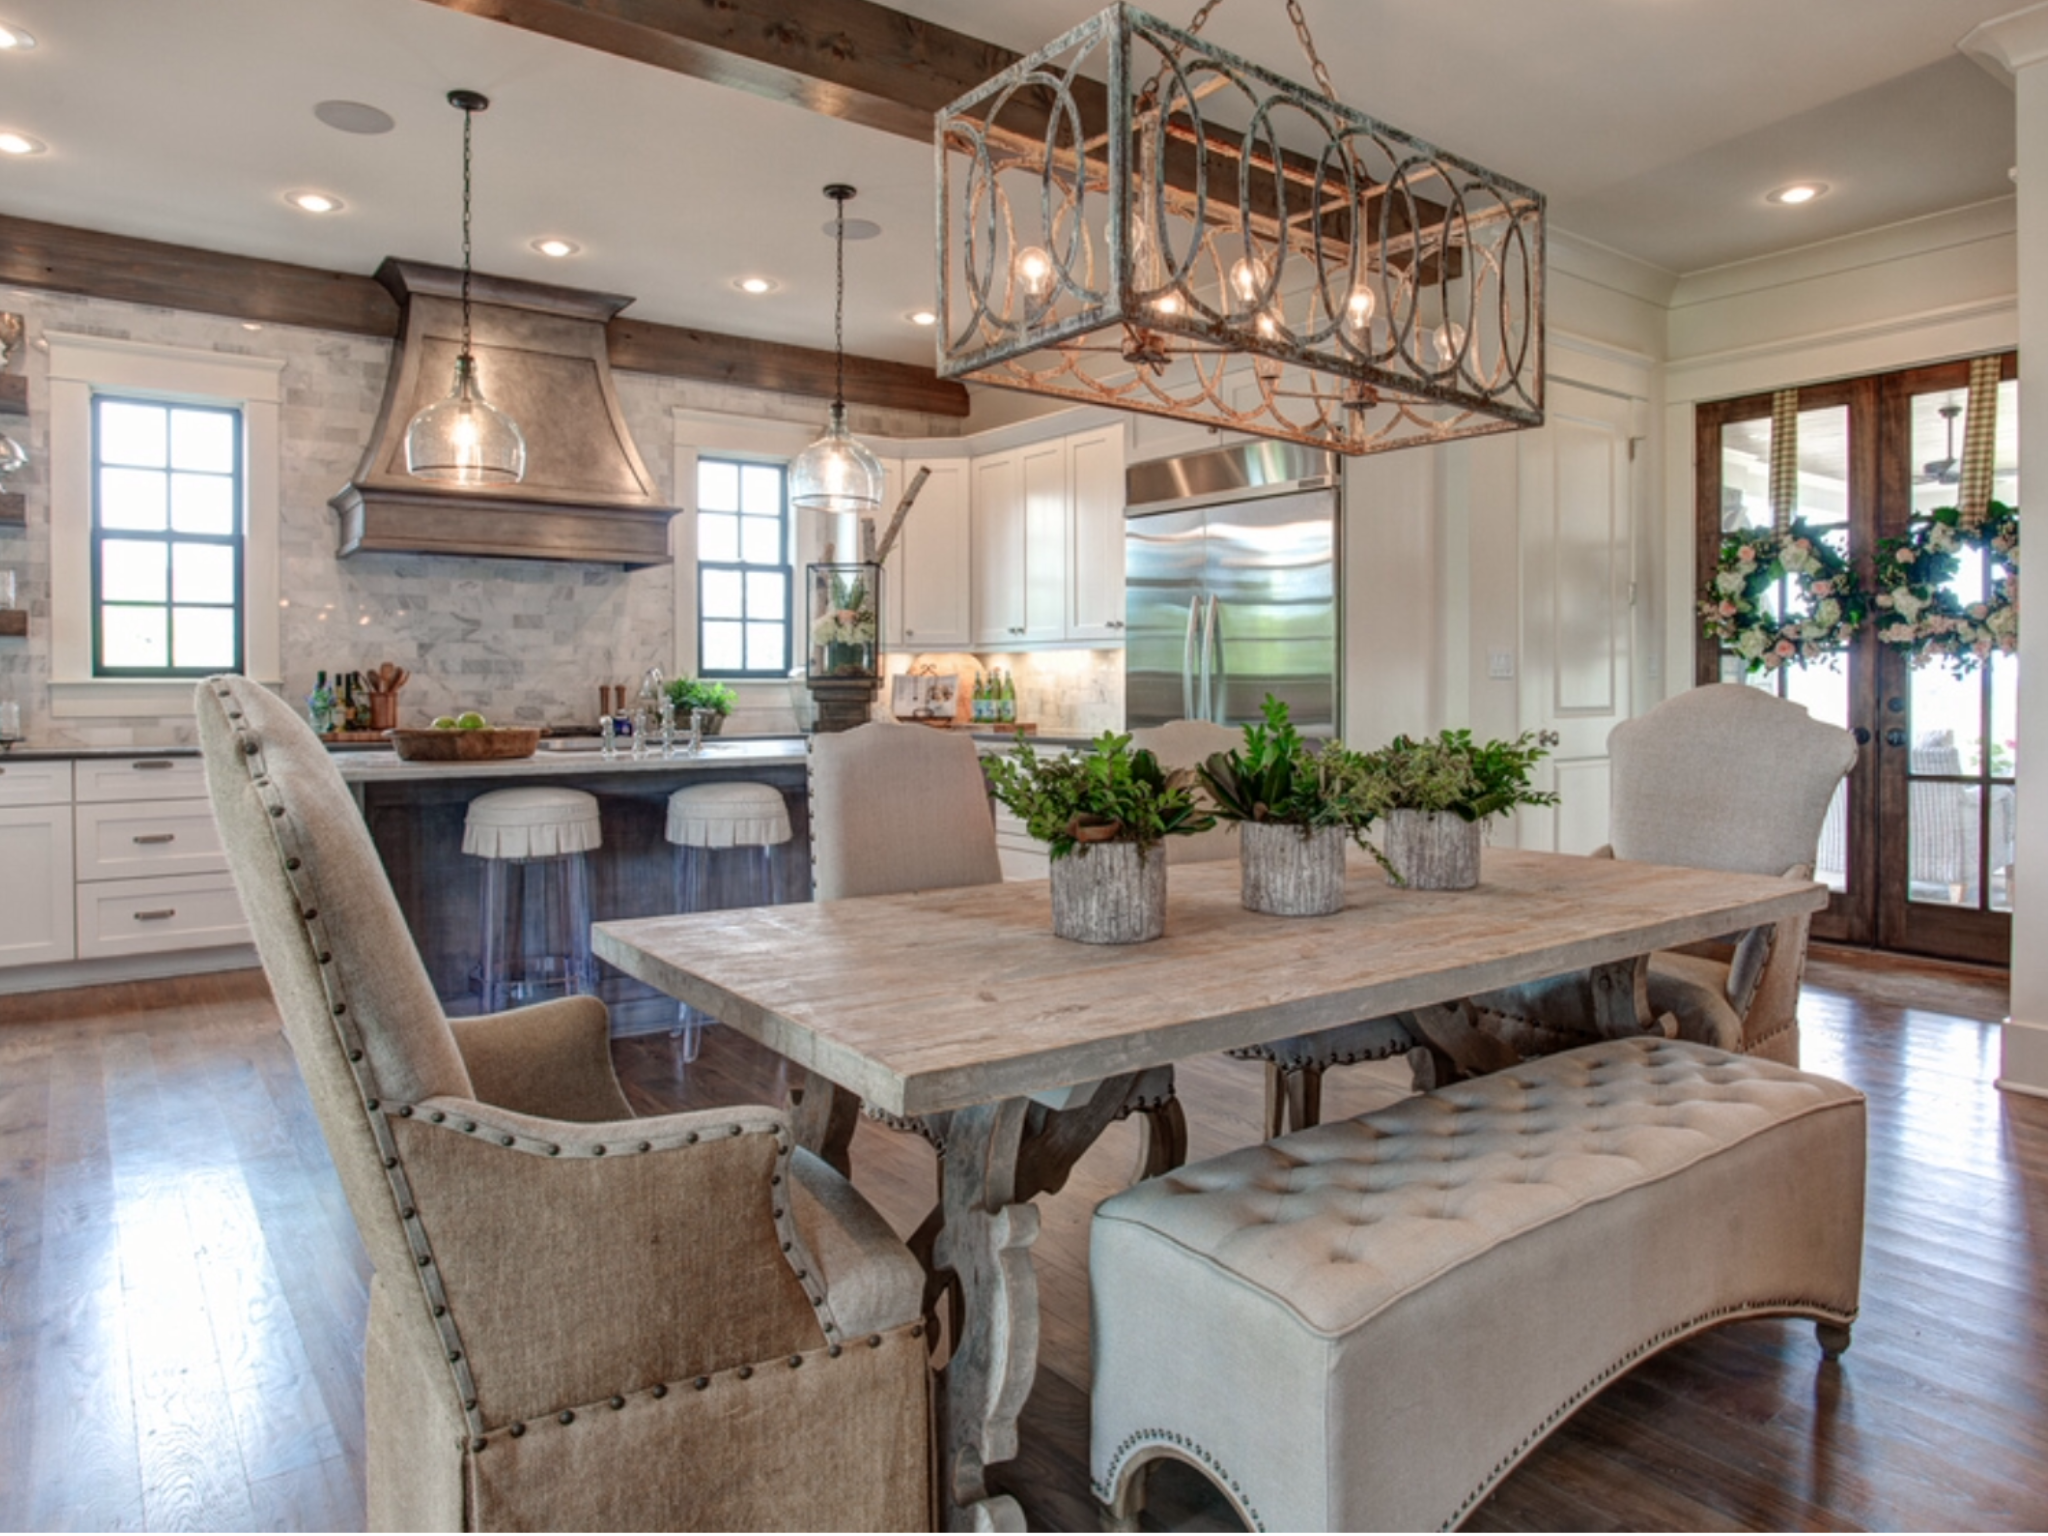 Pretty Kitchen And Dining Room With An Open Floor Plan Living